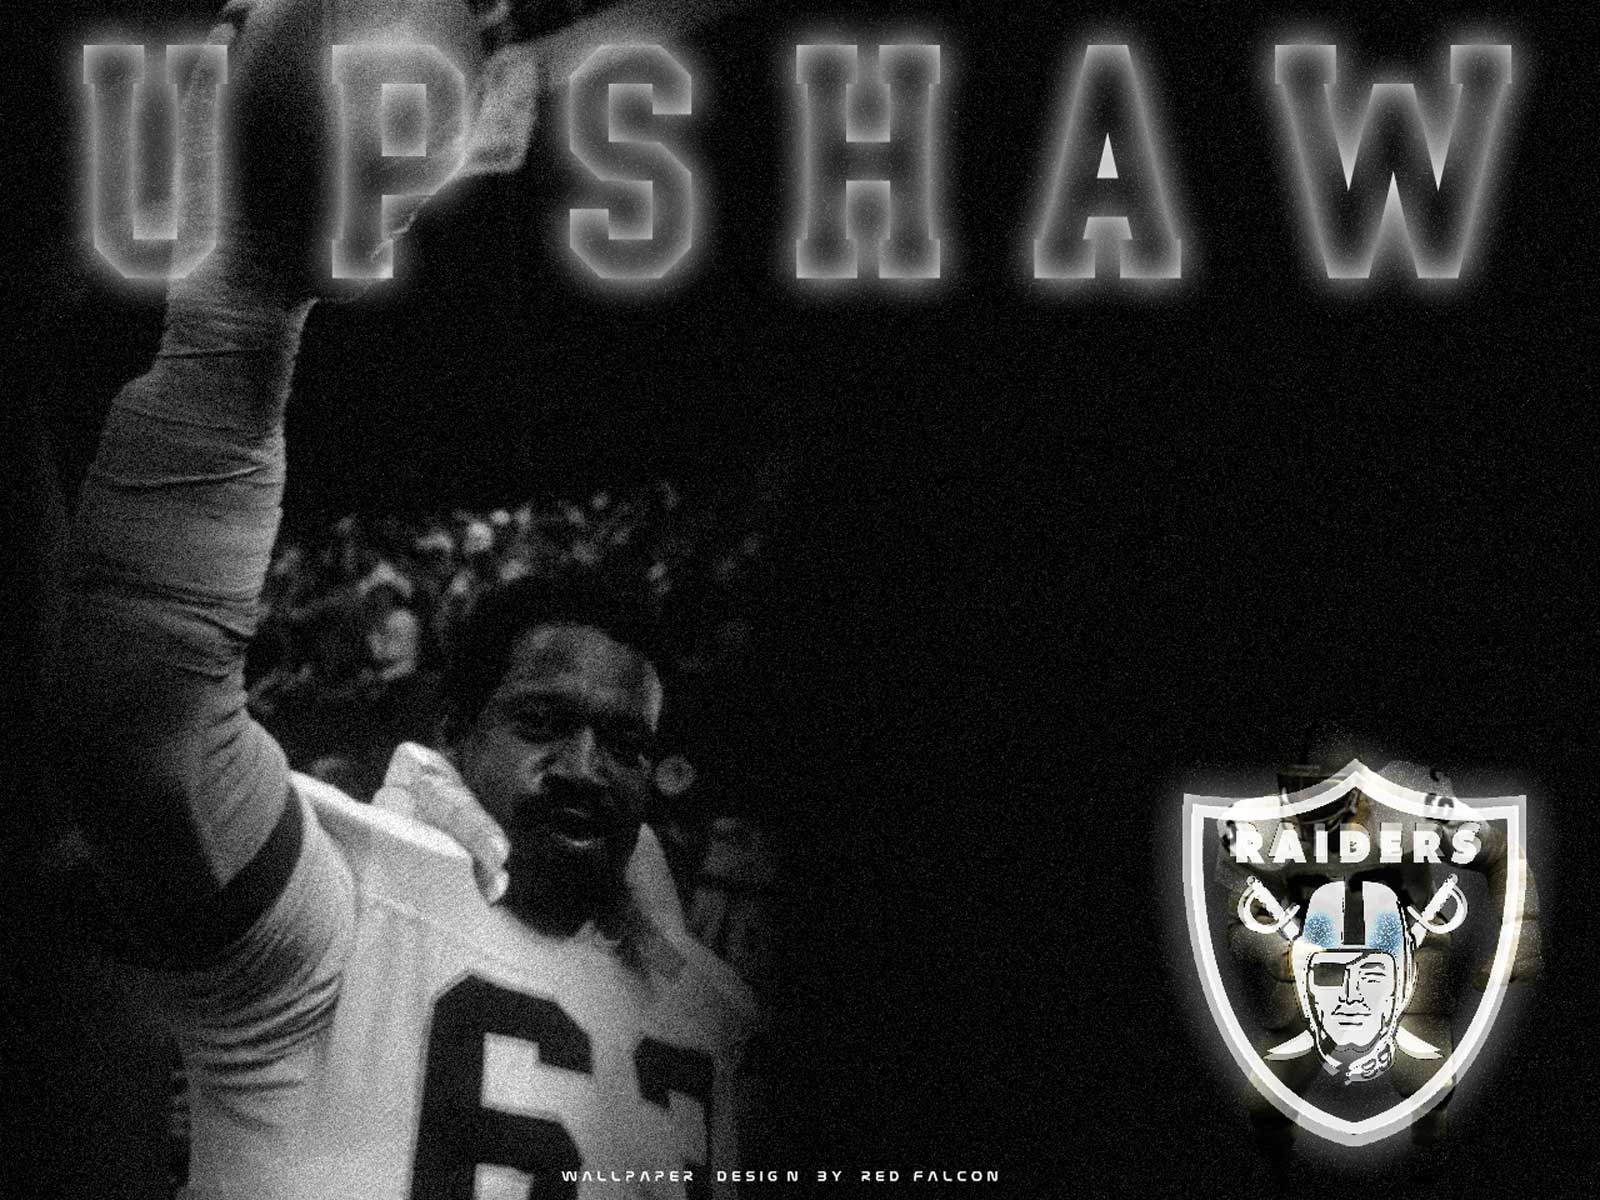 wallpaper of the month Oakland Raiders Oakland Raiders wallpapers 1600x1200